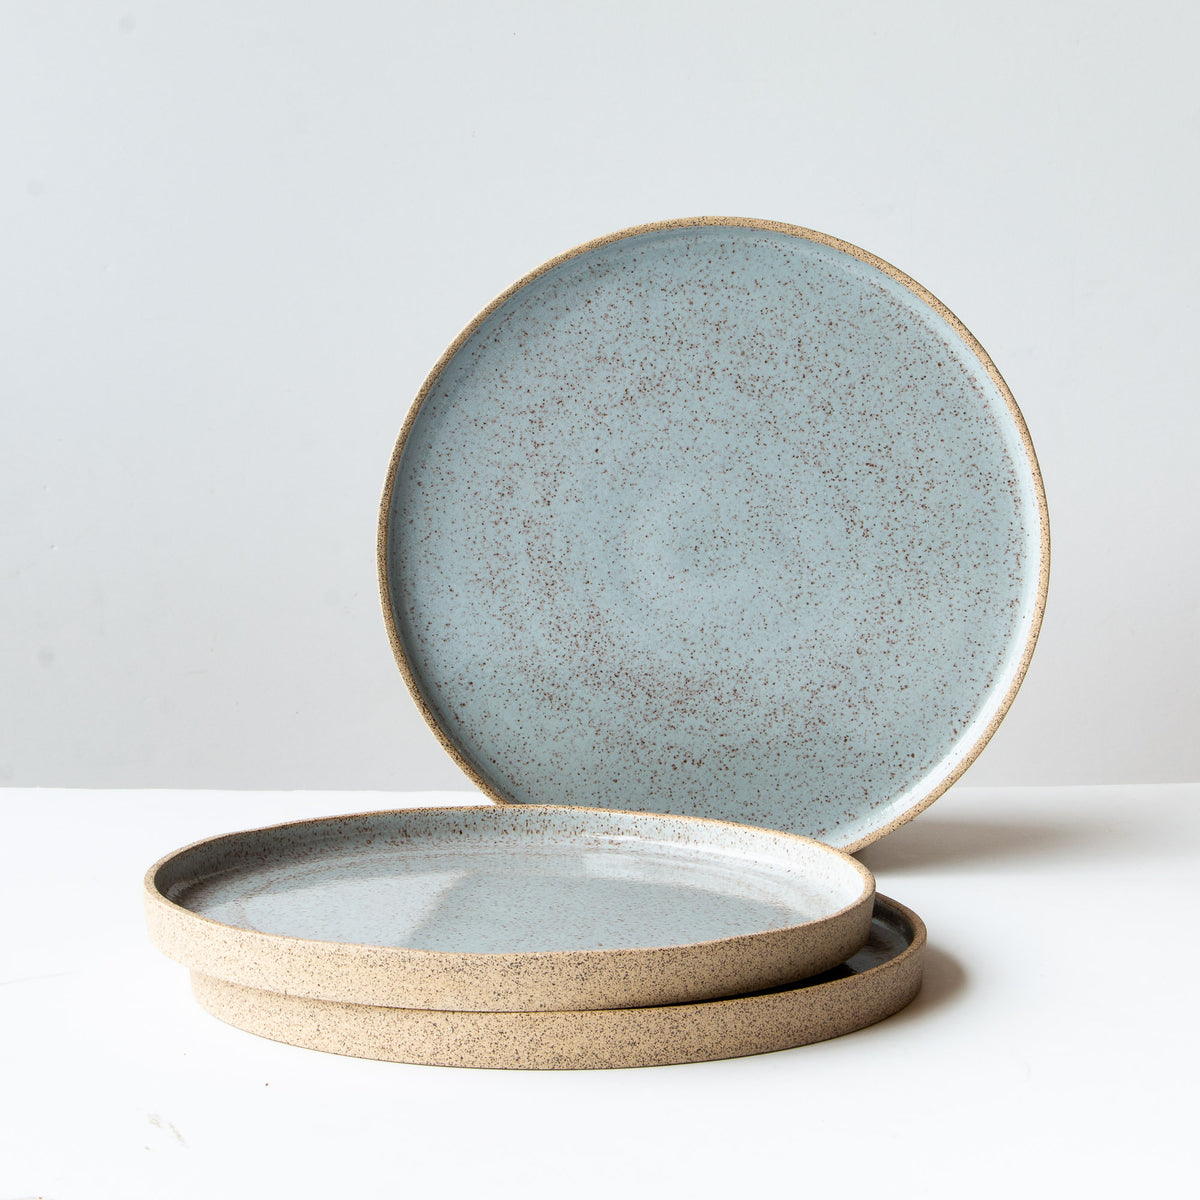 Three Large Speckled Stoneware Plates in Pale Blue Glaze - Sold by Chic & Basta